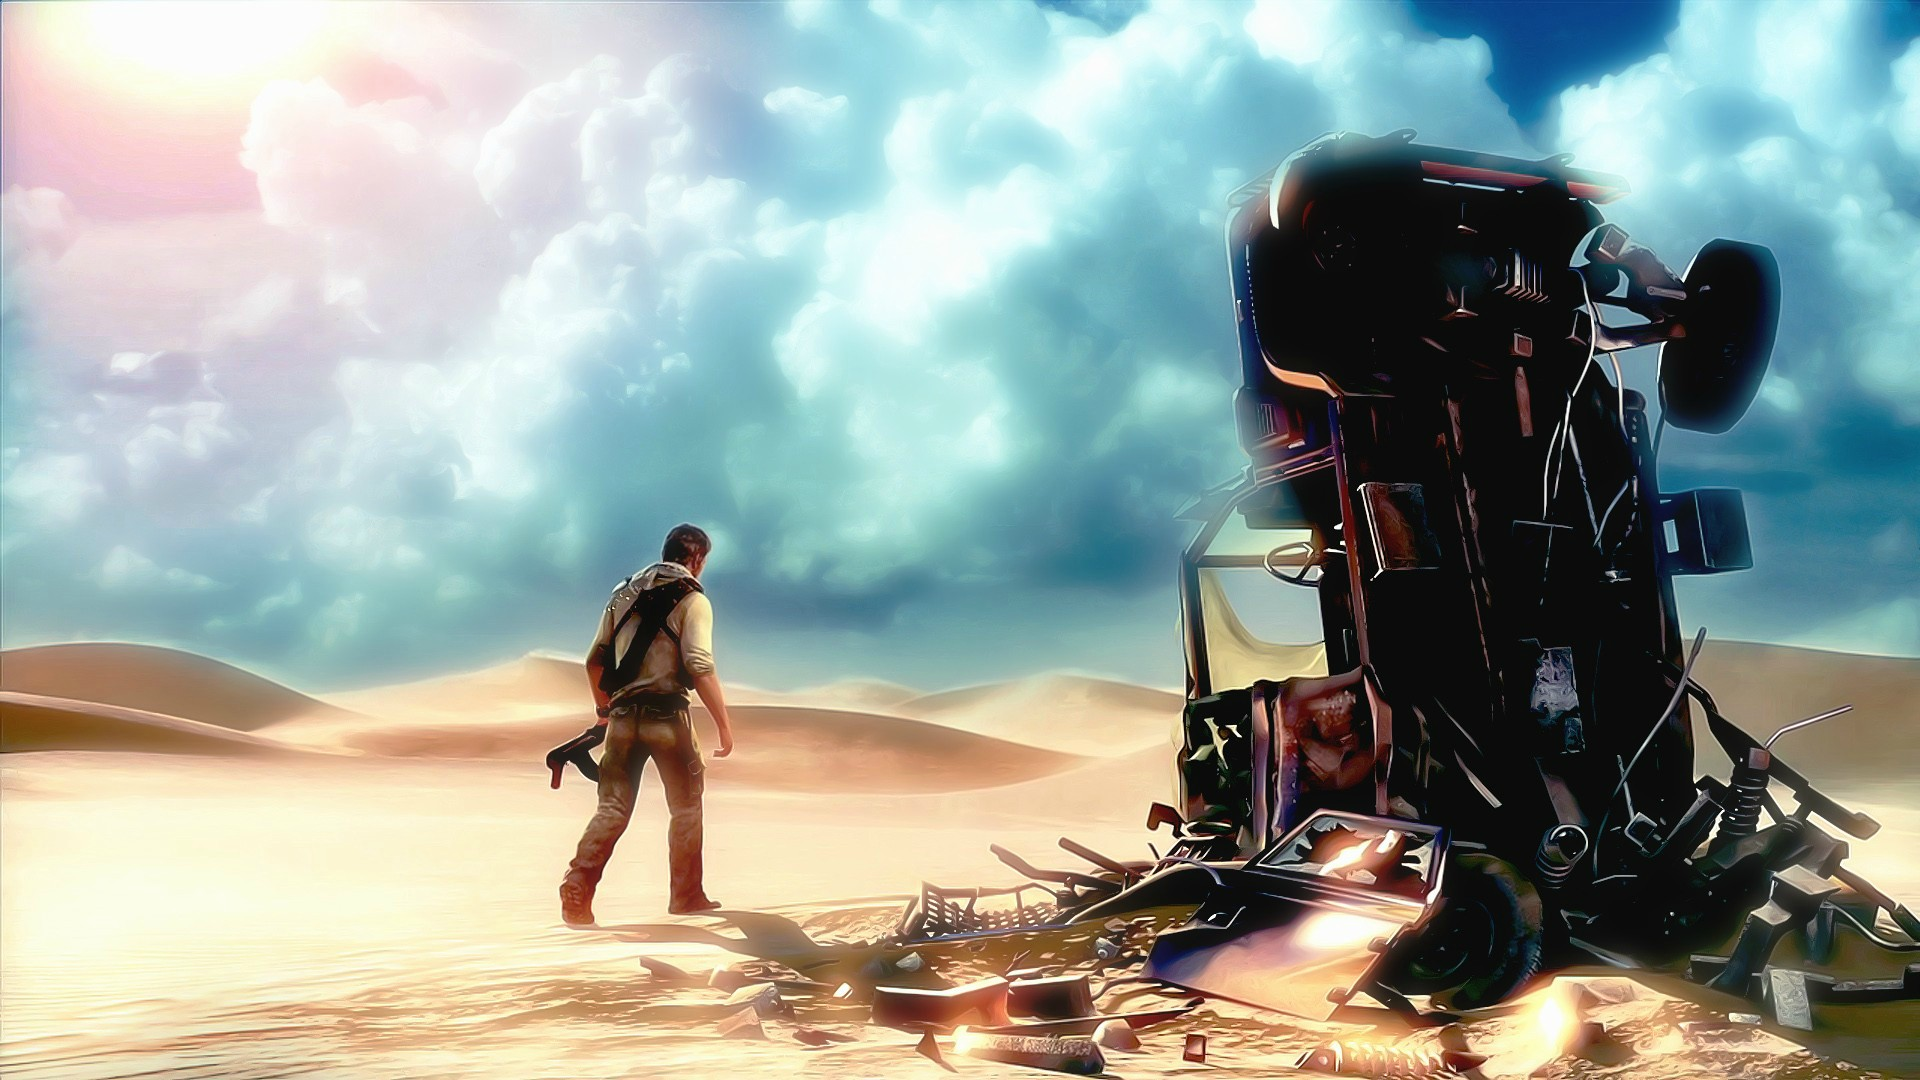 Uncharted 3: Drake's Deception Full HD Wallpaper and ... Uncharted 3 Drakes Deception Wallpaper